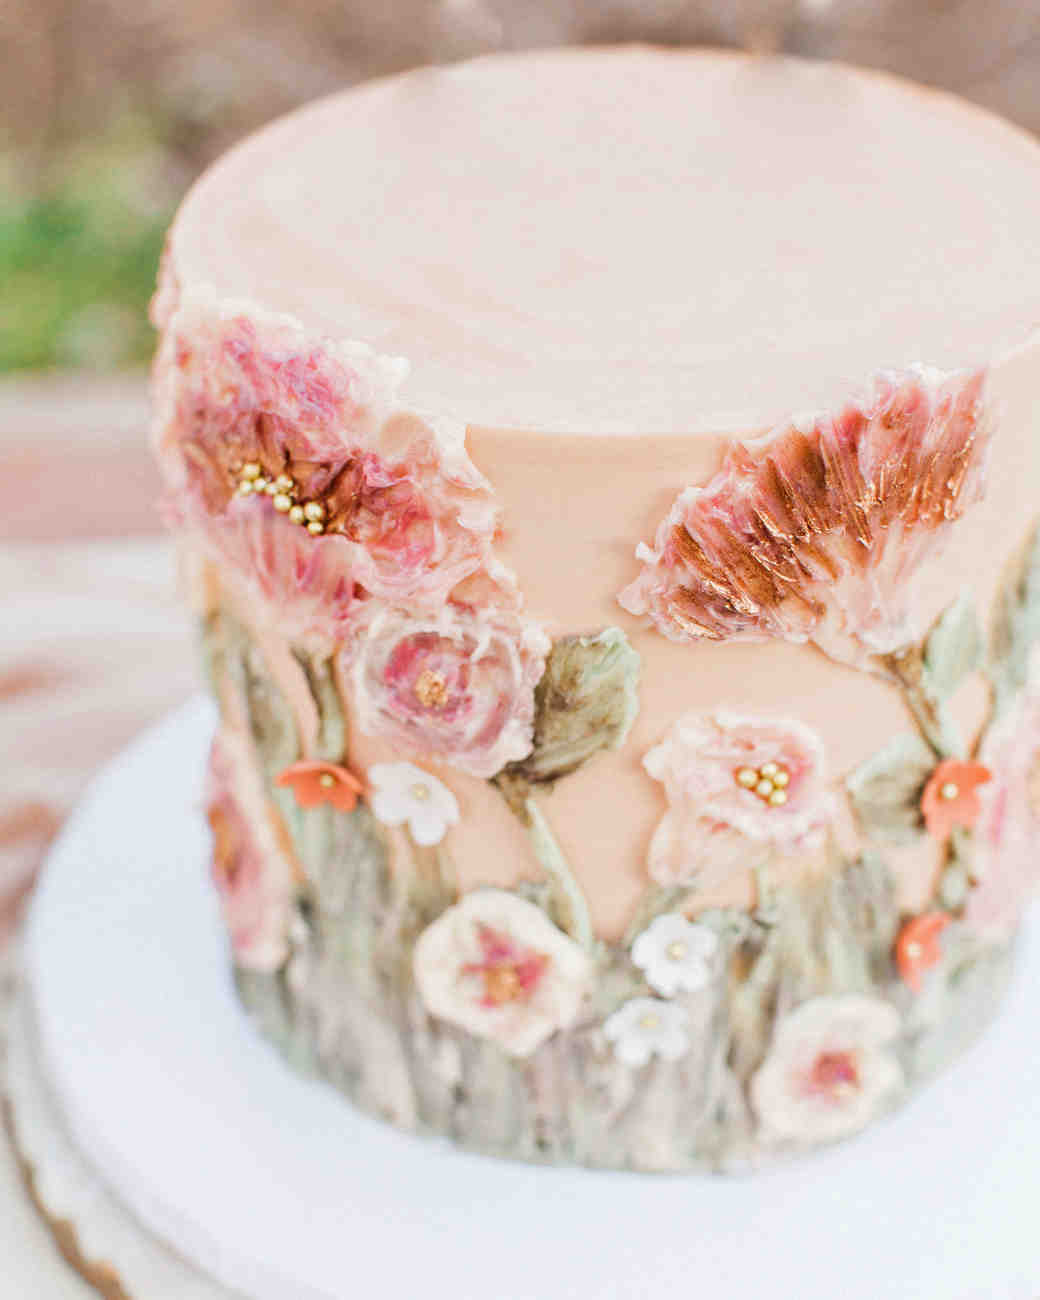 & 23 of the Sweetest Bridal Shower Cakes | Martha Stewart Weddings